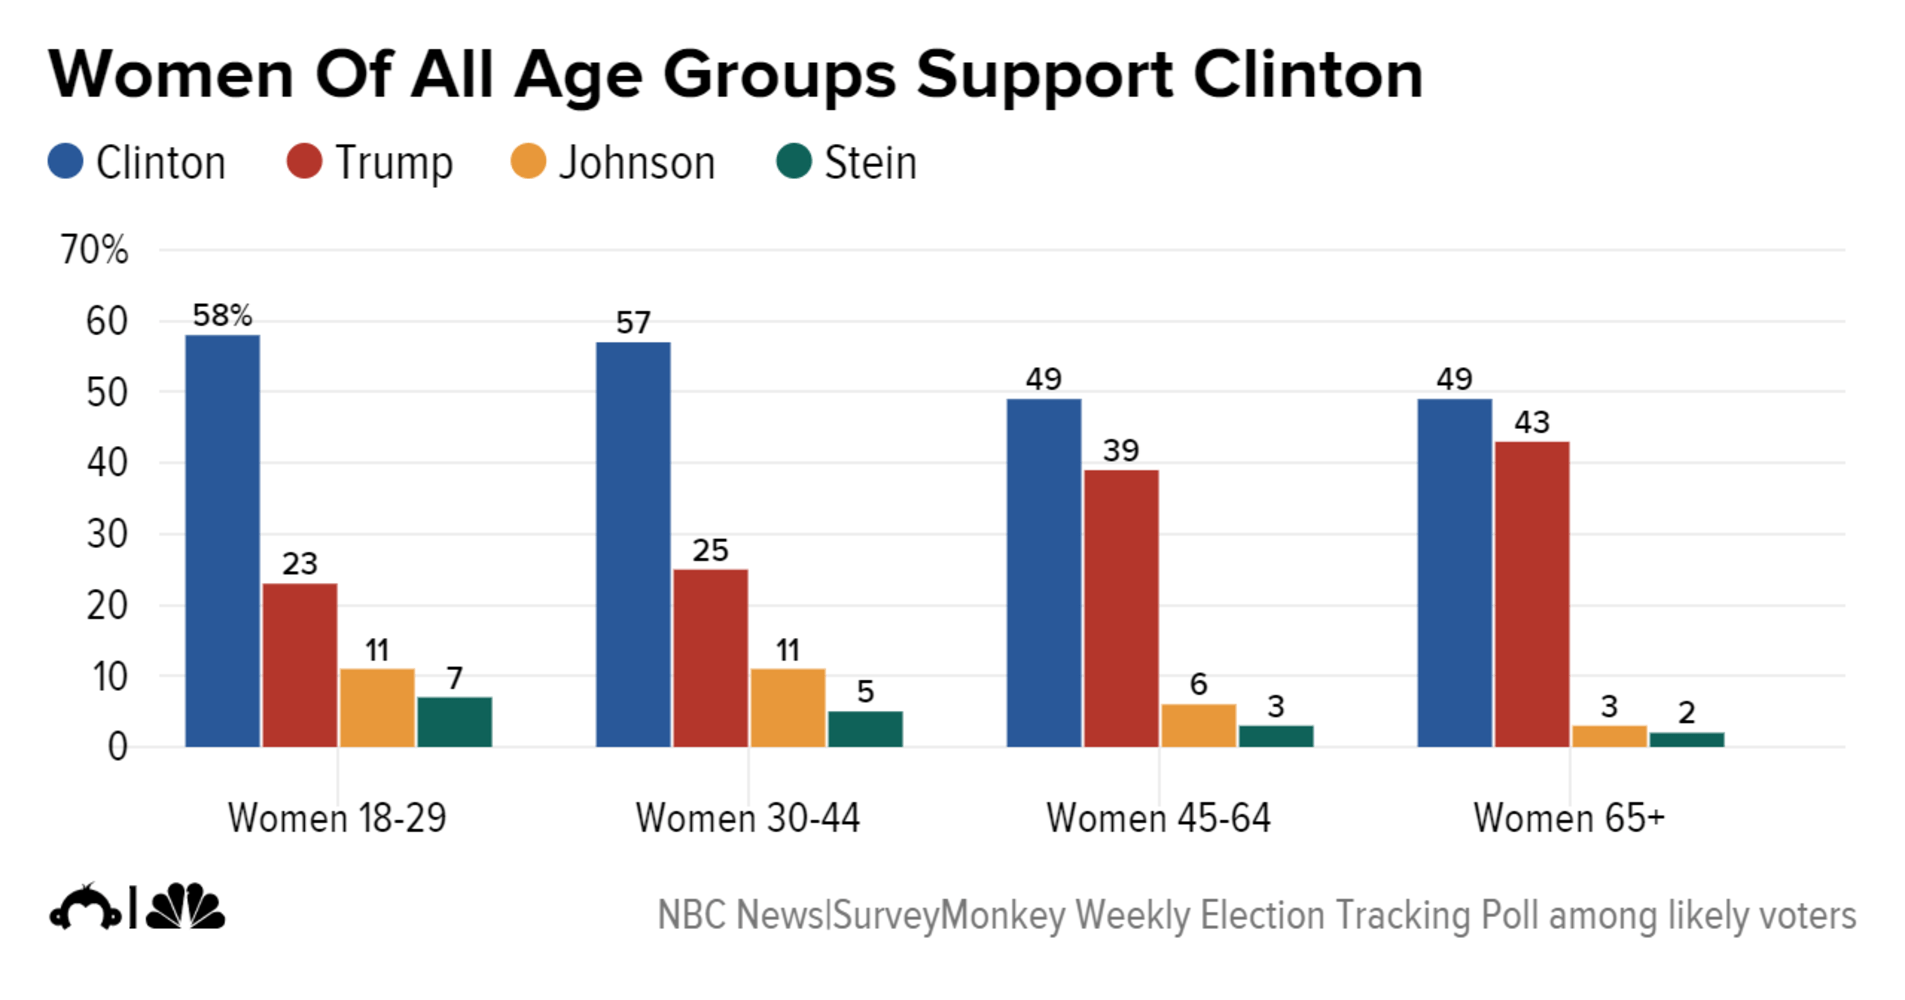 clinton outperforms trump among women of all age groups education women college degrees support her by a 37 point margin 62 percent to 25 percent and women out college degrees support her by a narrower 6 point